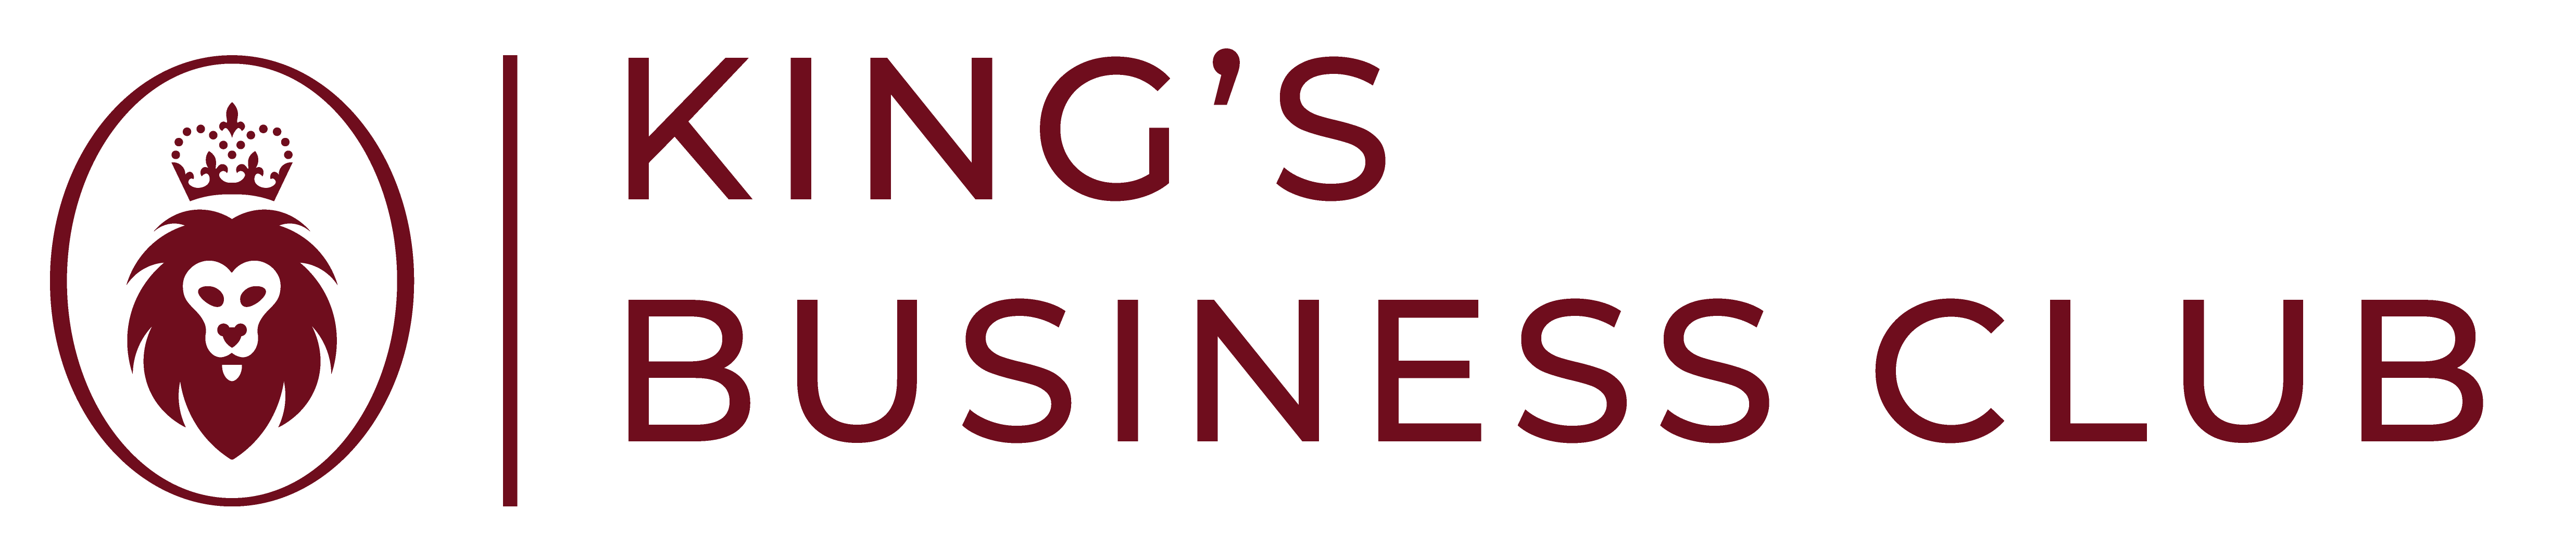 King's Business Club